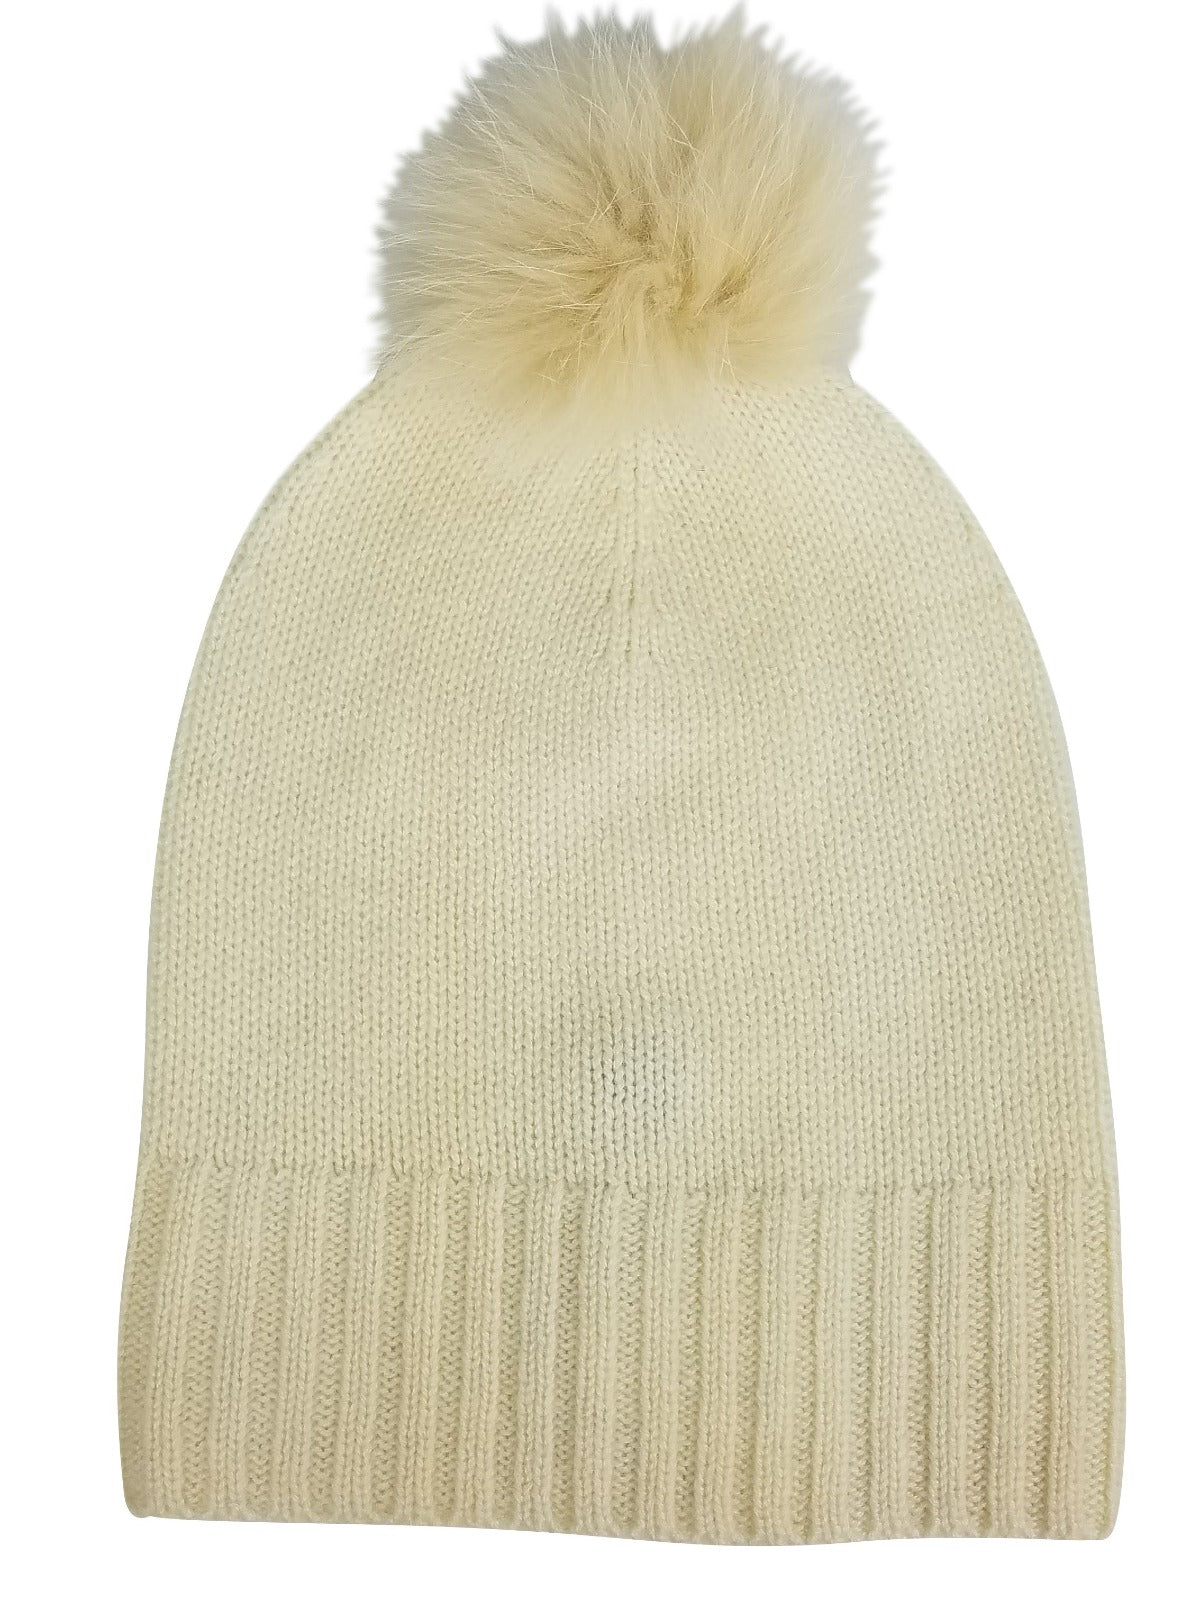 Cashmere Slouchy Cuff Hat with Fur Pom